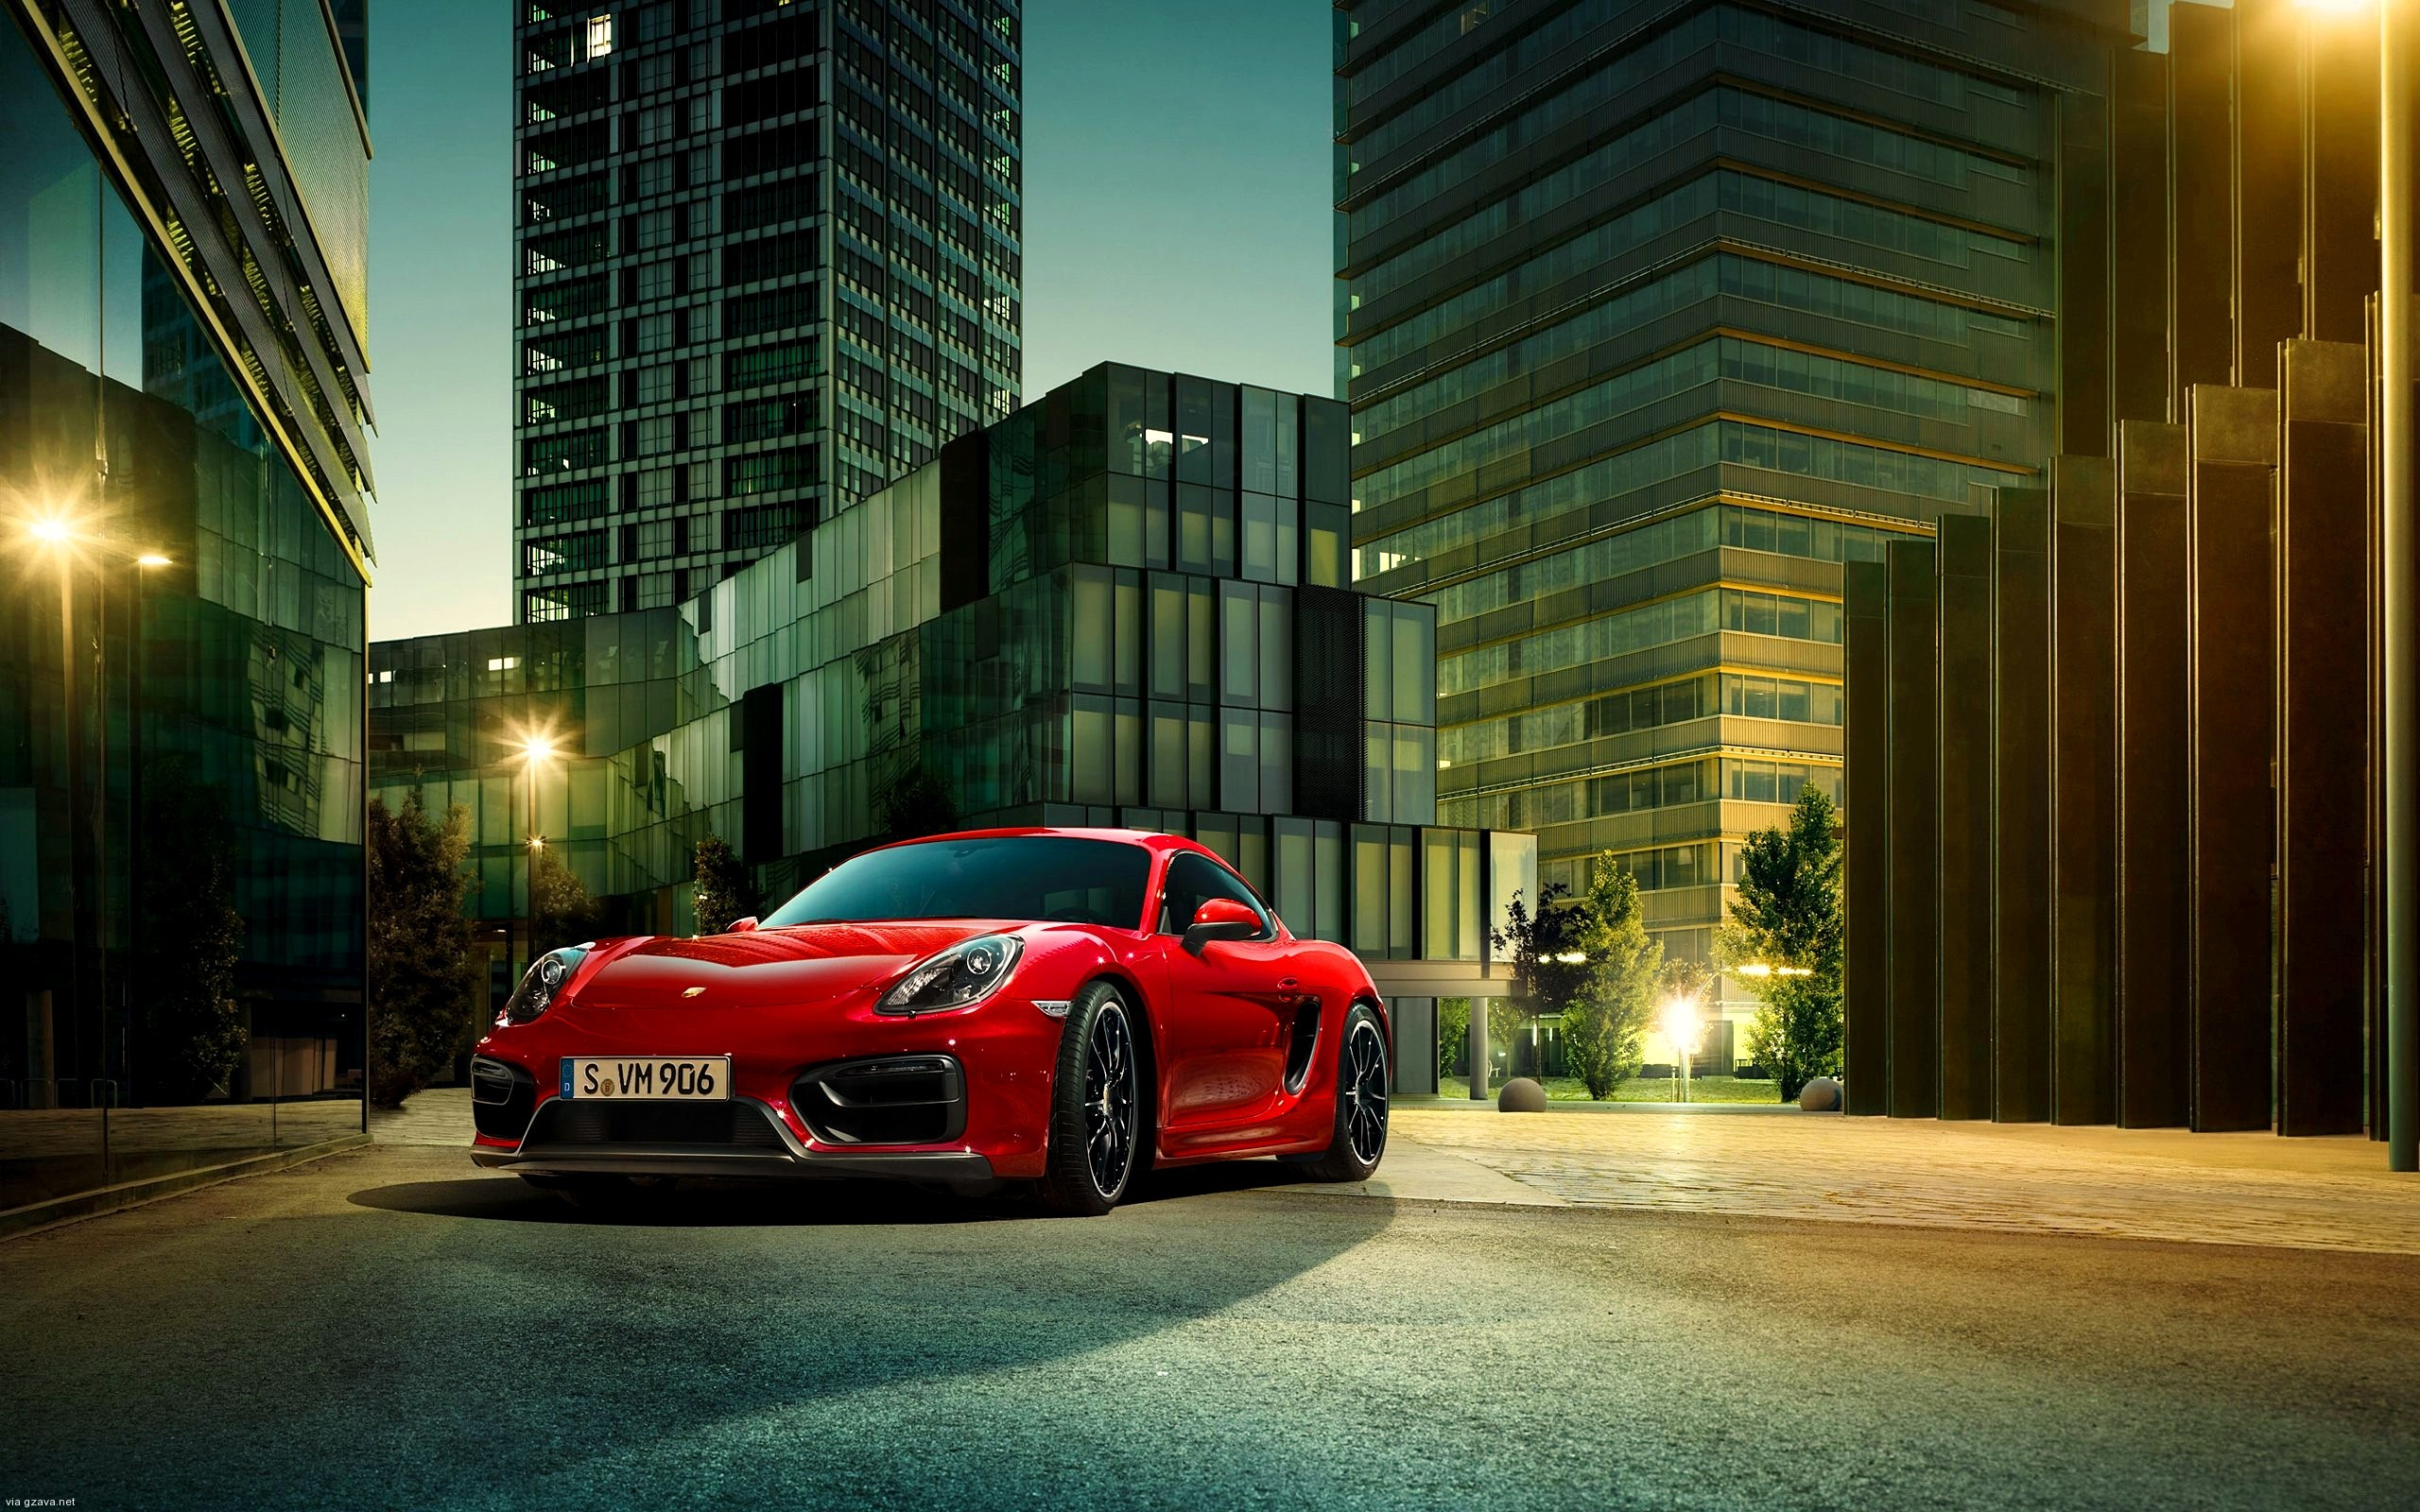 Cayman Gt4 Wall Paper: Porsche Cayman GT4 Ultimate Guide: Review, Price, Specs